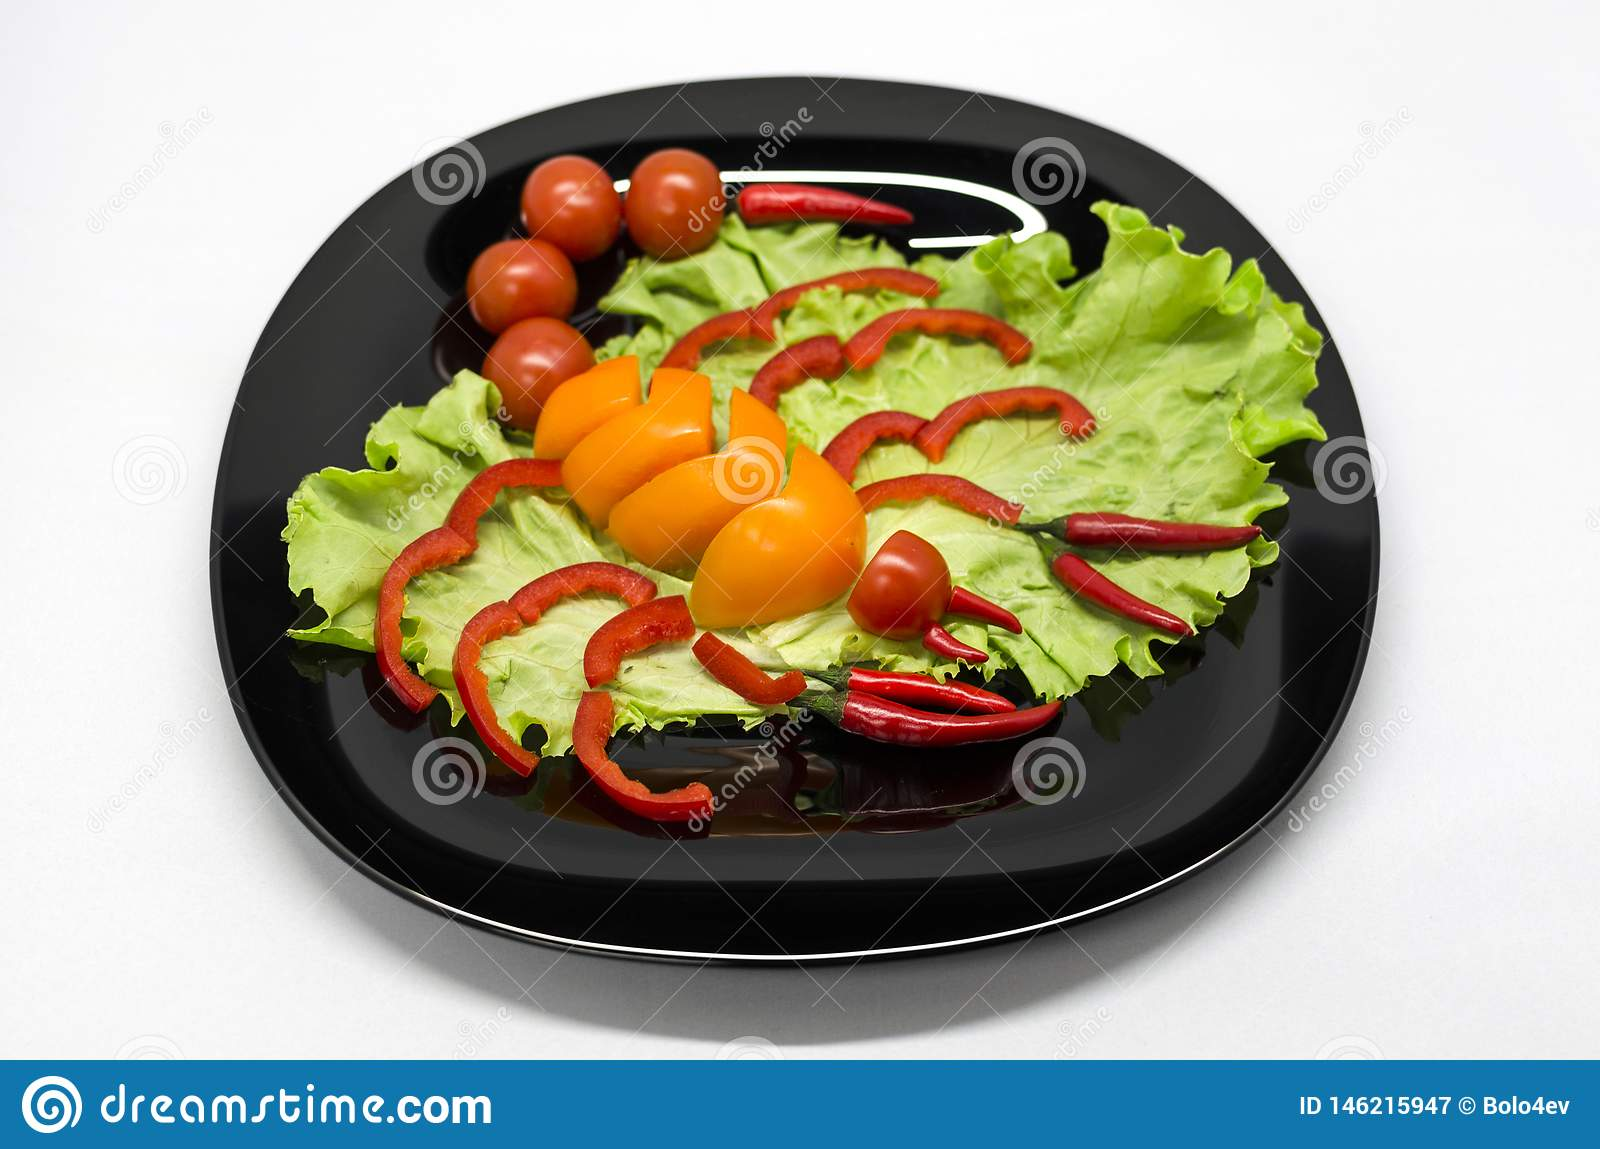 Vegetables on a plate laid out in the shape of a scorpion